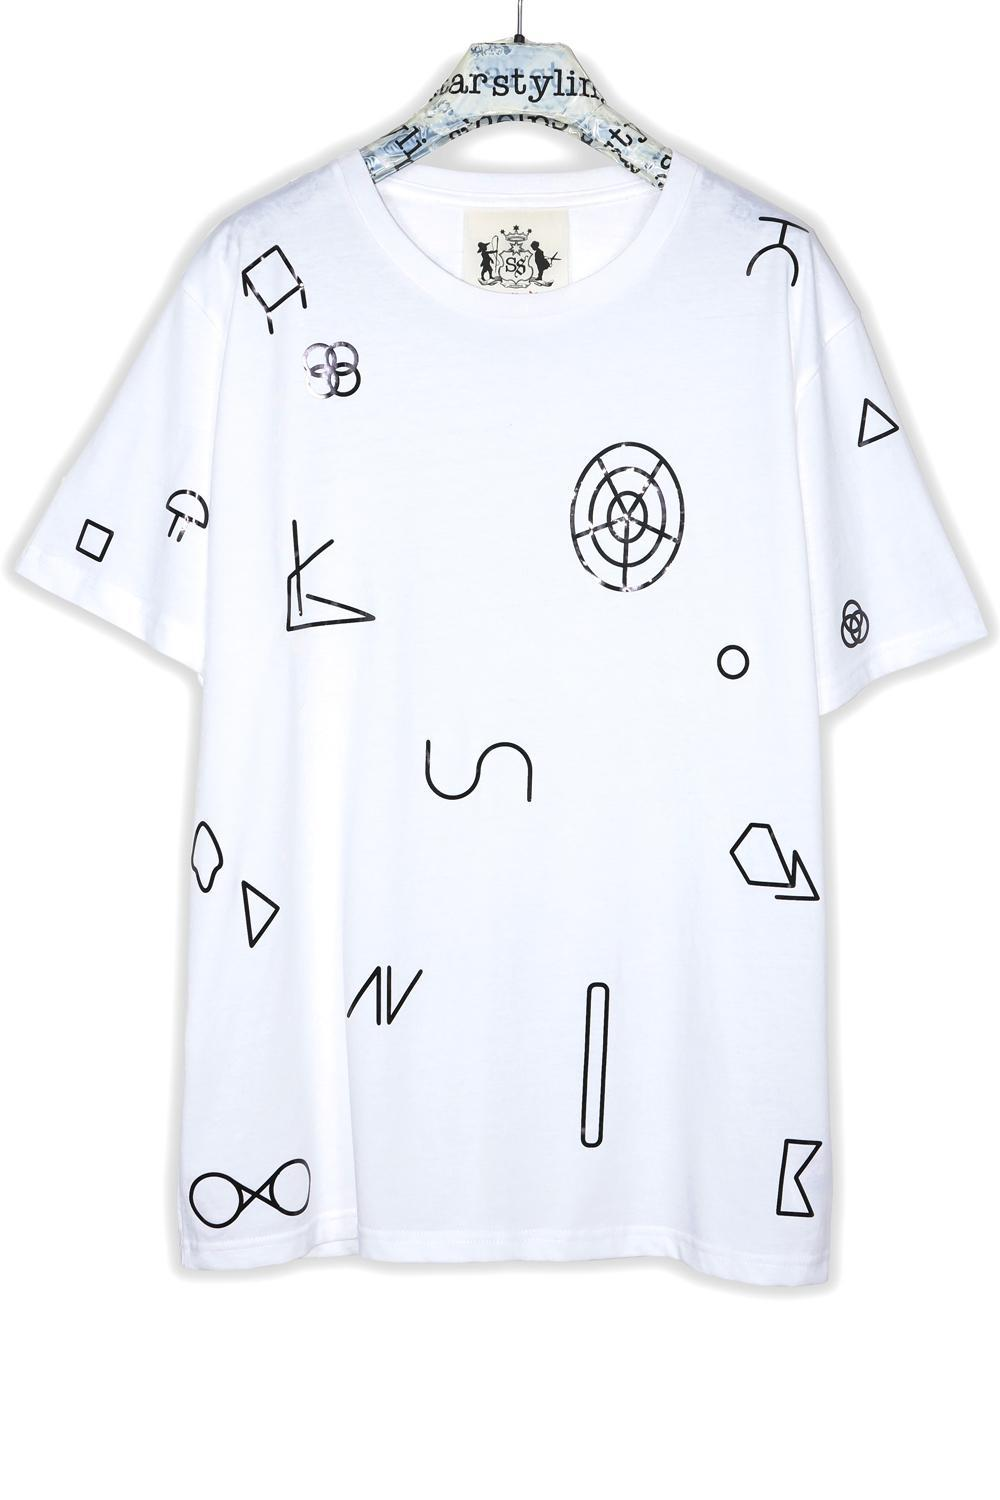 FORMS T-SHIRT - 2